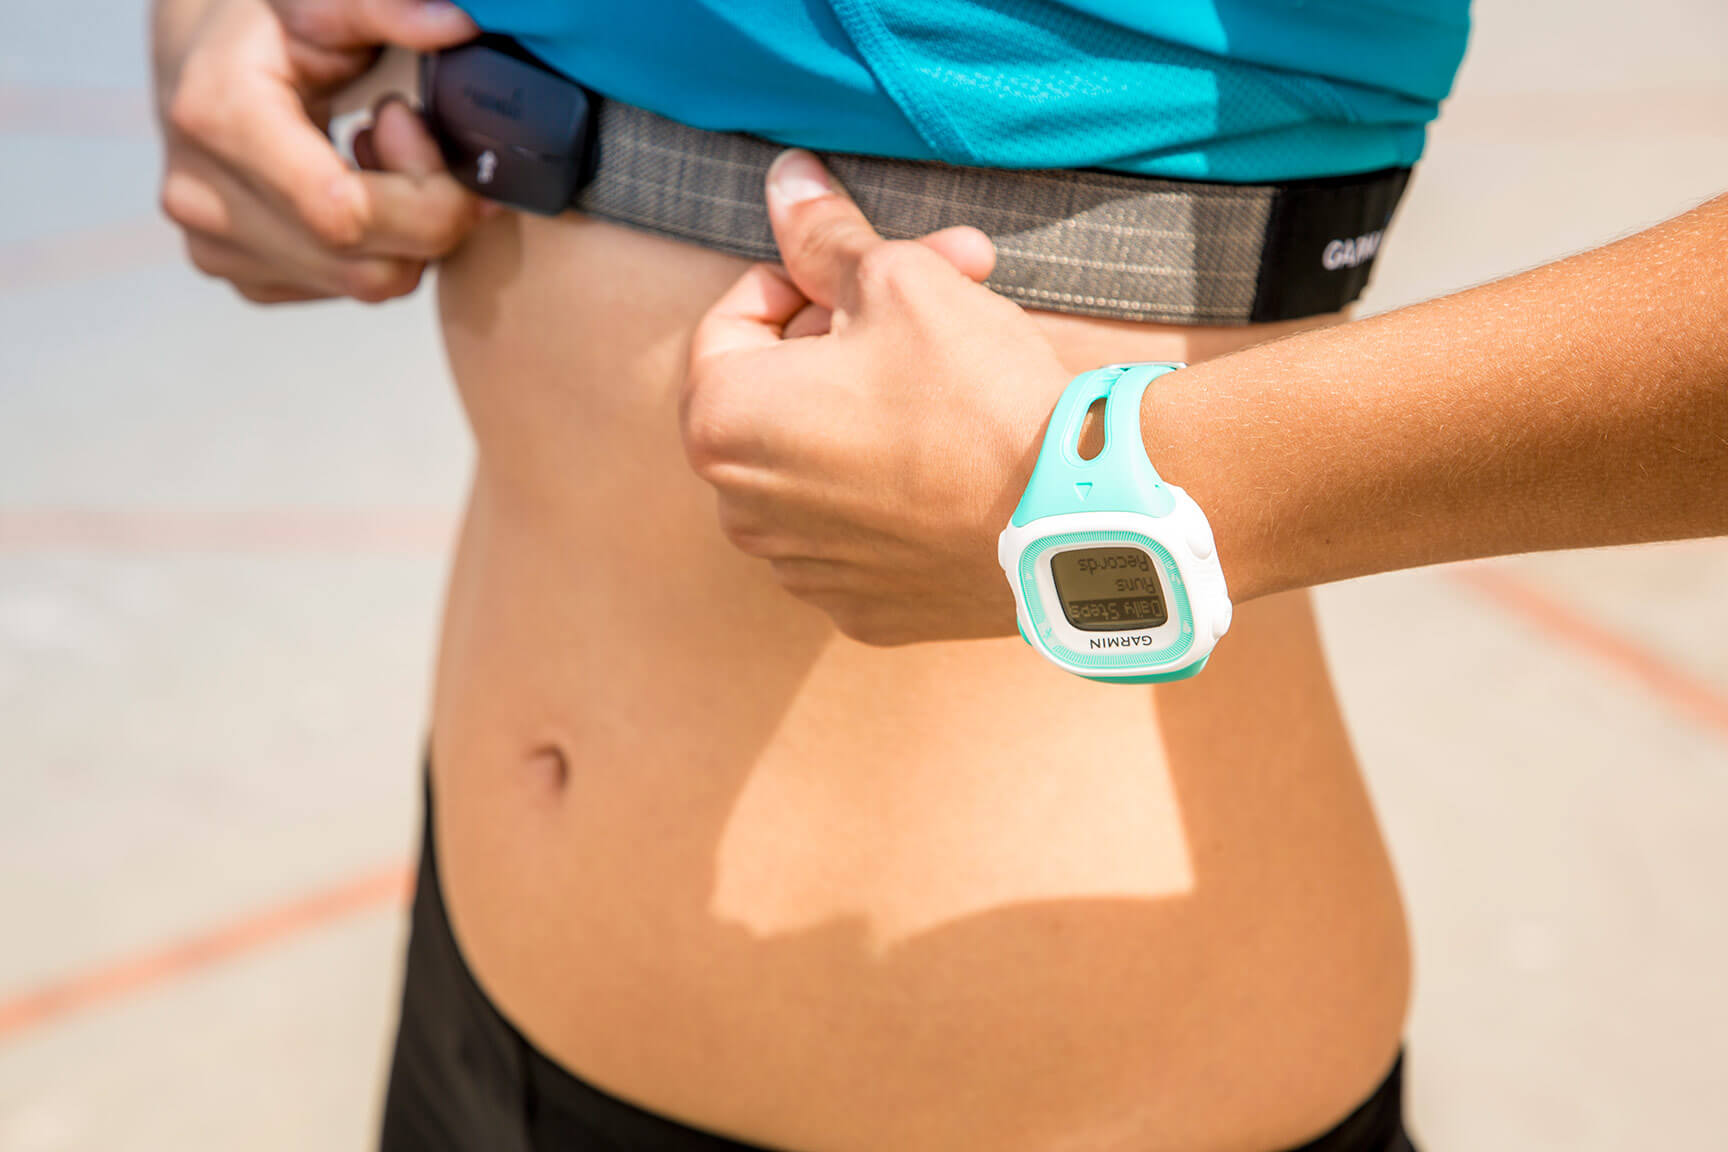 How to use Garmin heart rate monitor